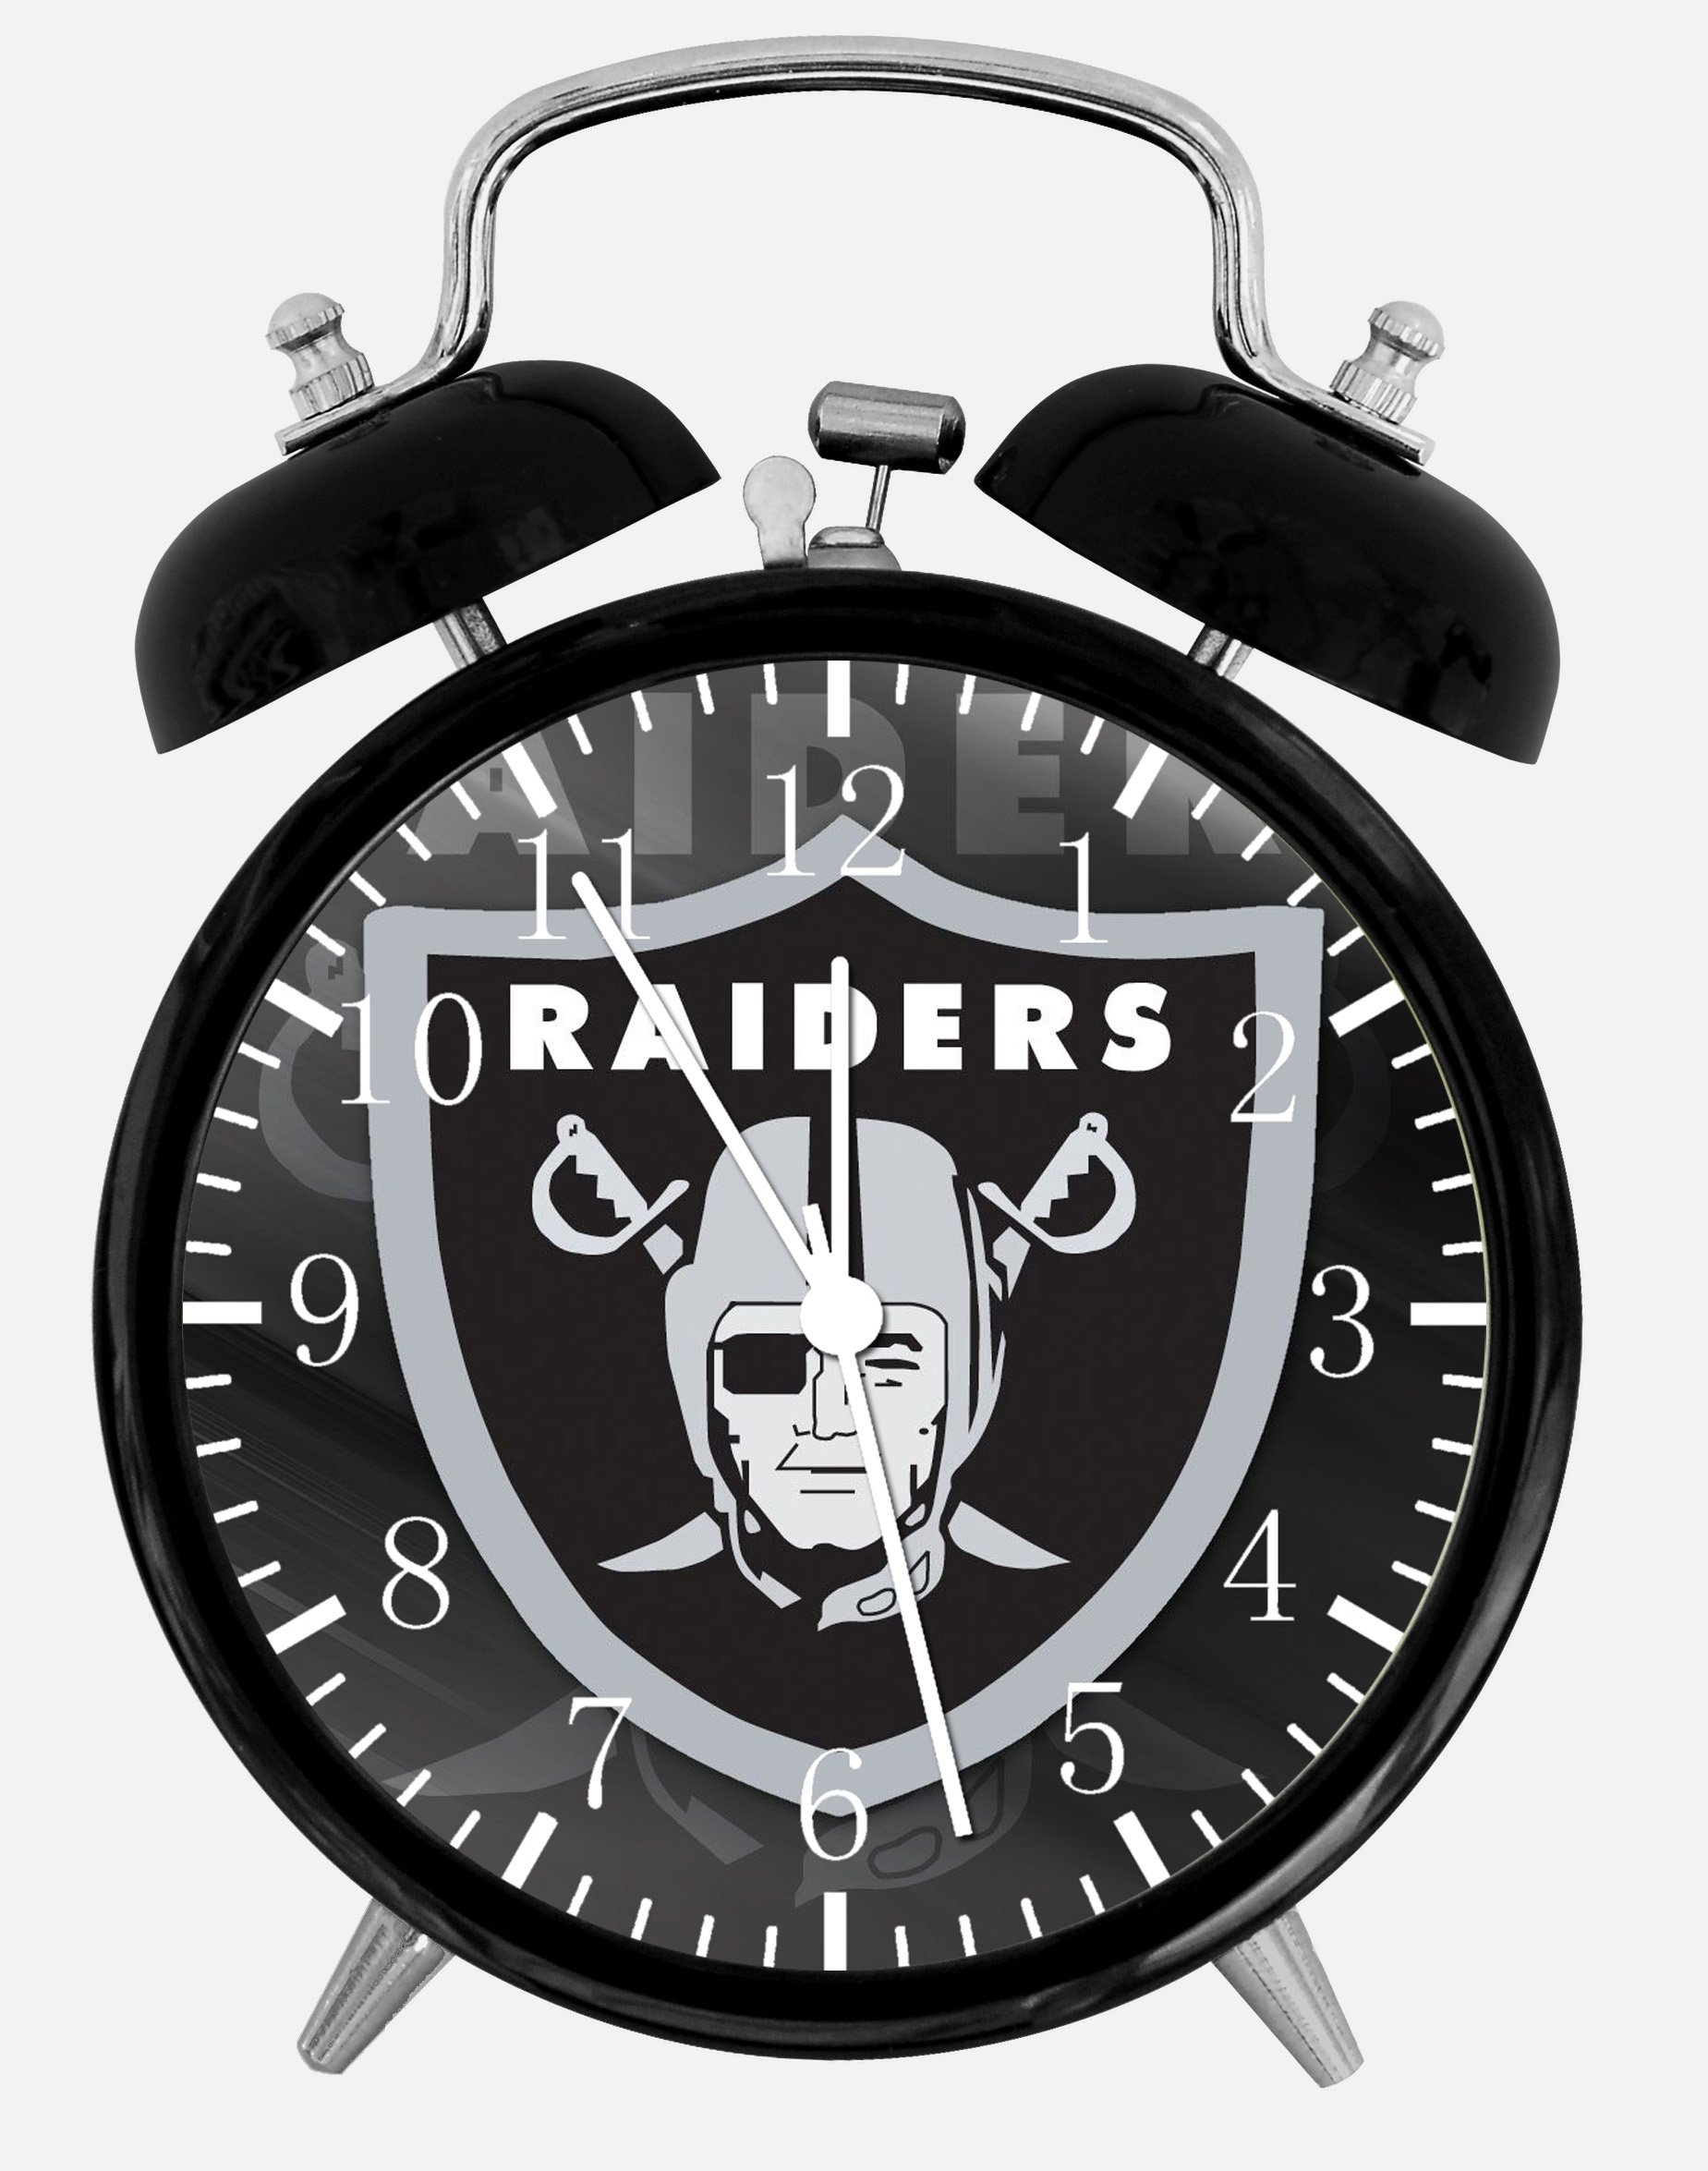 Raiders Alarm Desk Clock 3.75'' Home or Office Decor E438 Nice For Gift